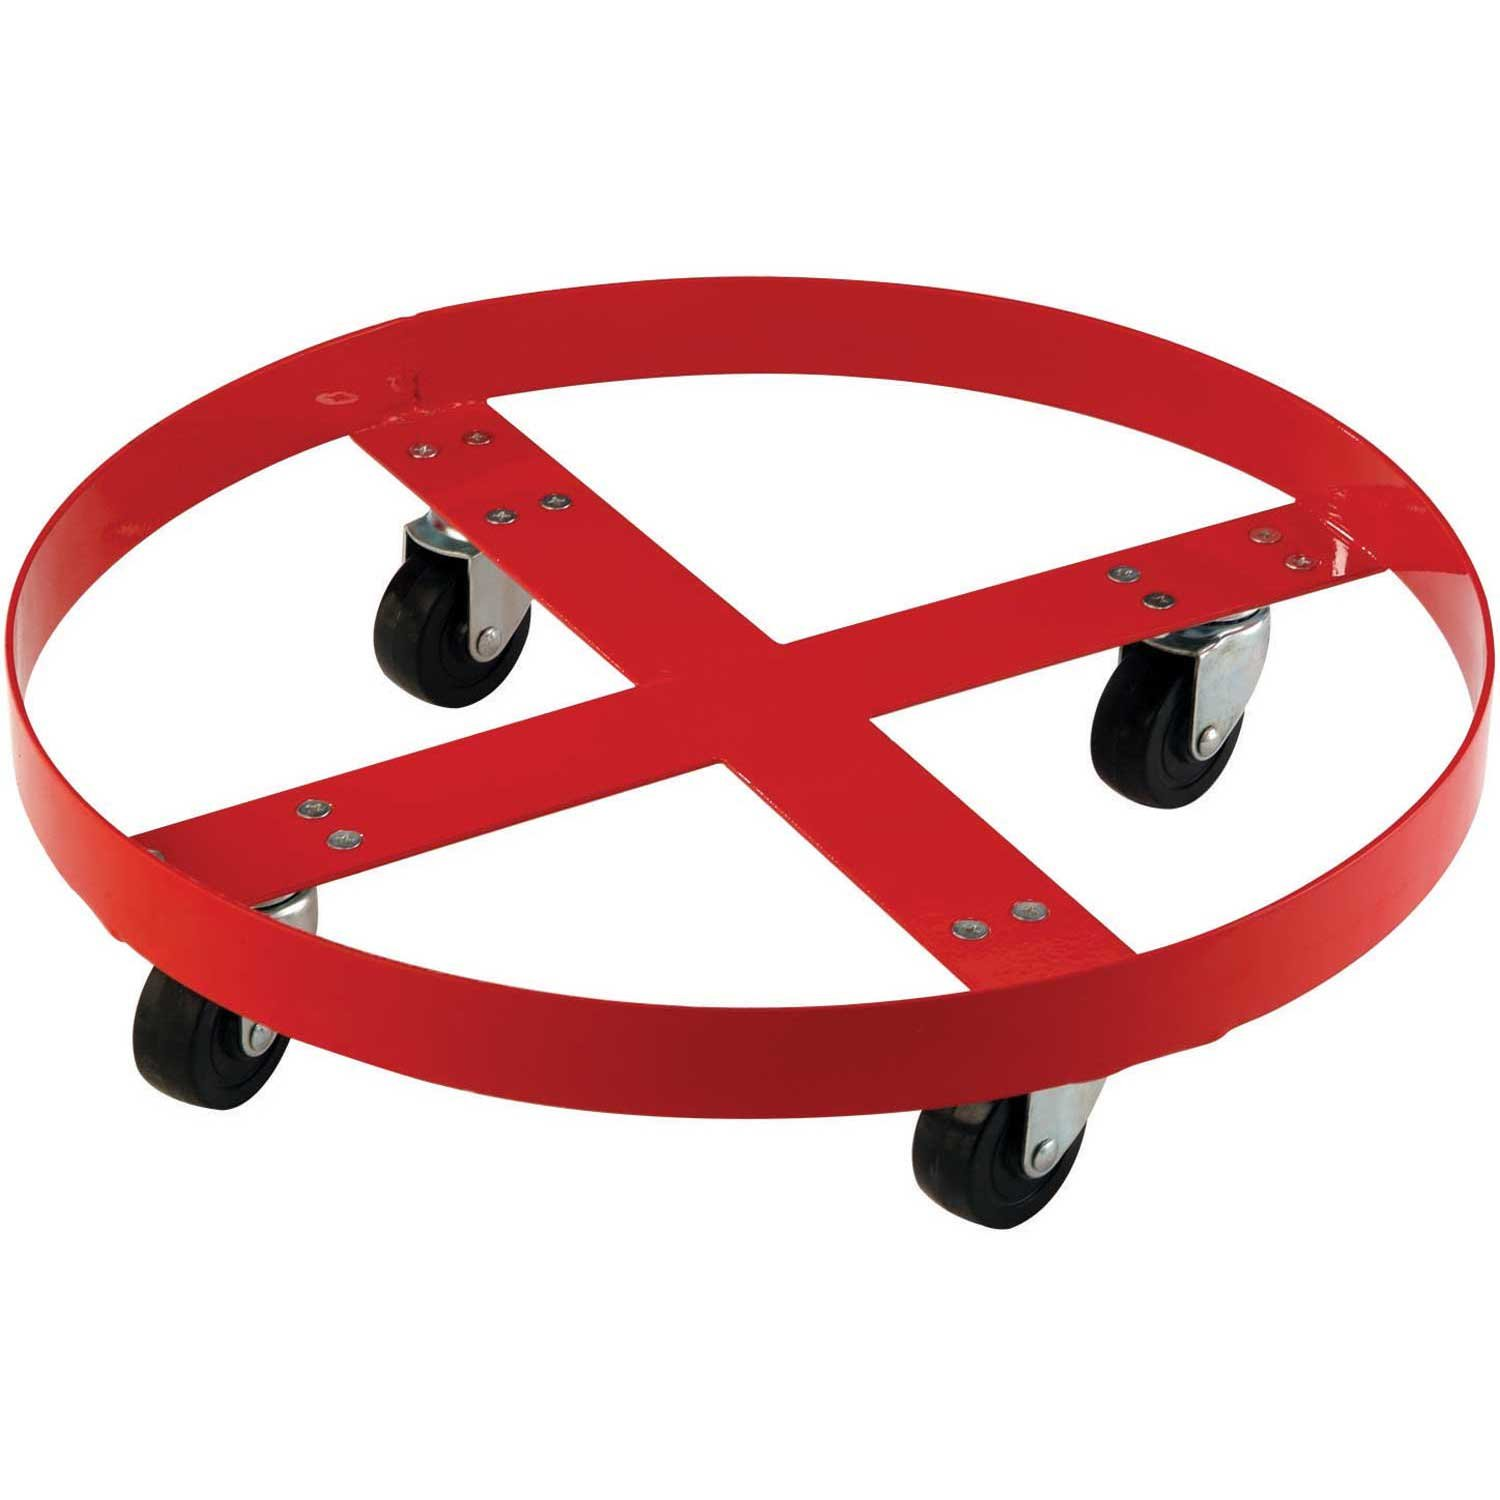 1000 Lb. Capacity Drum Dolly for 55 Gallon Drum - Steel Wheels